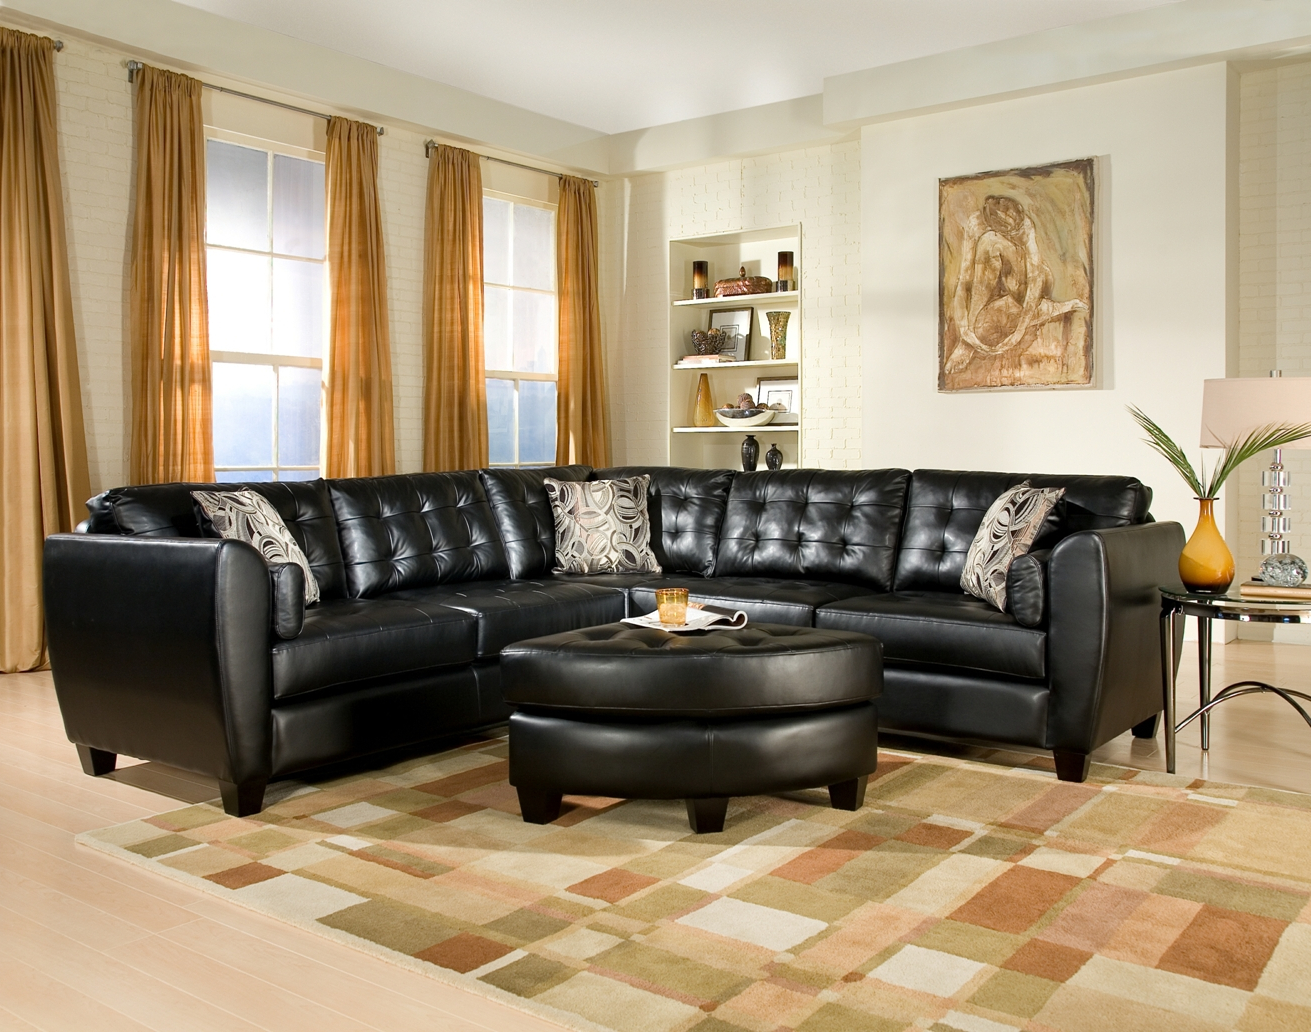 sofa sets modern designs used bed for sale in singapore living room ideas with sectionals small